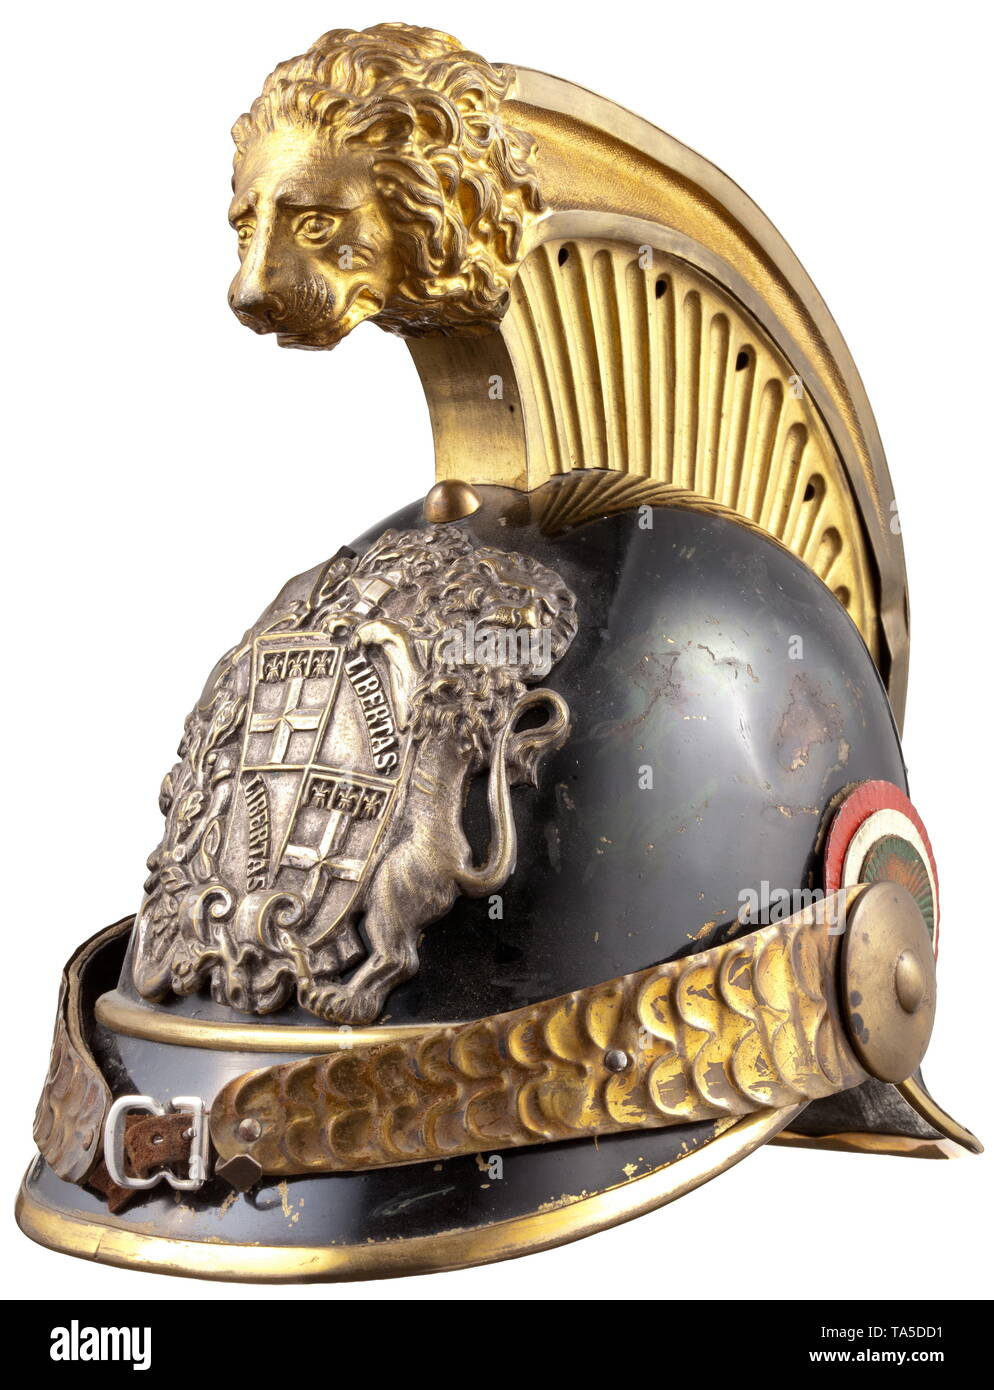 A helmet of the Savoy horseguard militia, circa 1850 Skull of black lacquered brass sheet. Gilt embossed comb, the front embellished with a large, elaborate lion head relief. Silver plated emblem with the large coat of arms of Savoy, one-piece embossed chinscales on smooth rosettes, left with original leather cockade, green underlined visors. Well preserved lining of tender brown leather (with loops). Signs of wear and age. Only slightly worn, in untouched original condition. historic, historical, Italian, Europe, European, 19th century, Additional-Rights-Clearance-Info-Not-Available Stock Photo